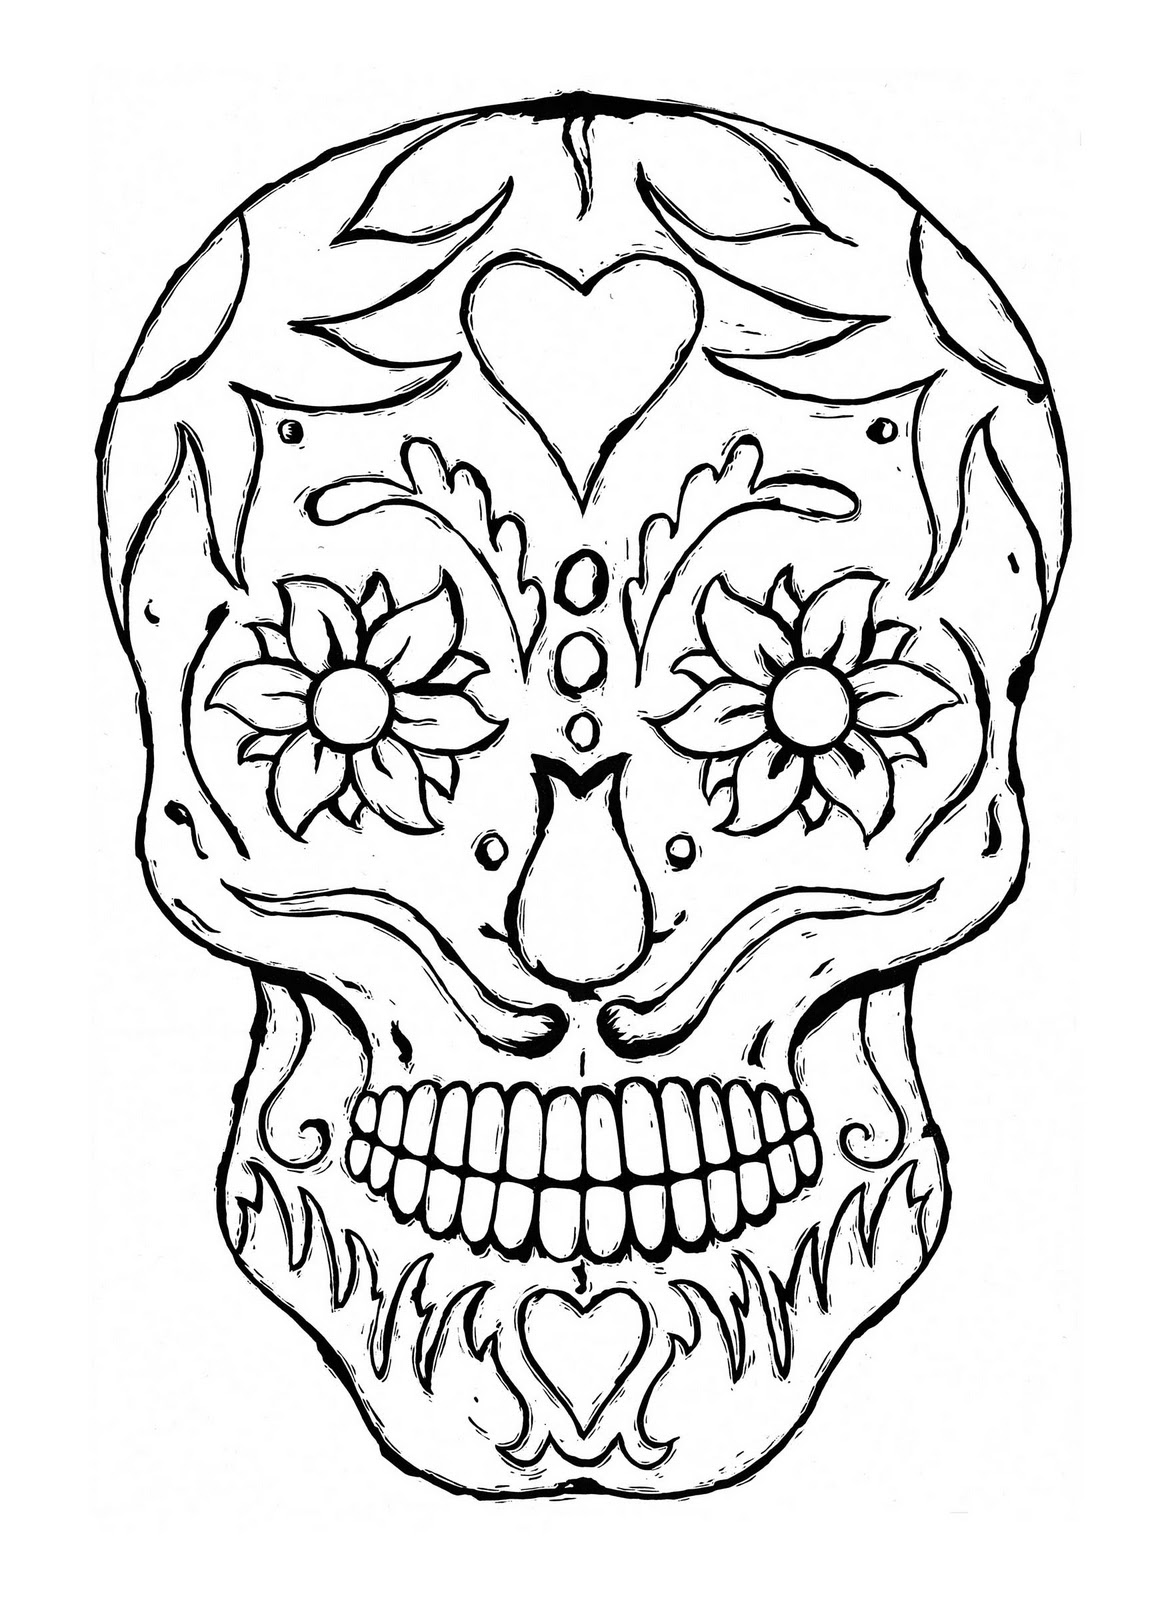 6 Images of Skull Printable Coloring Pages